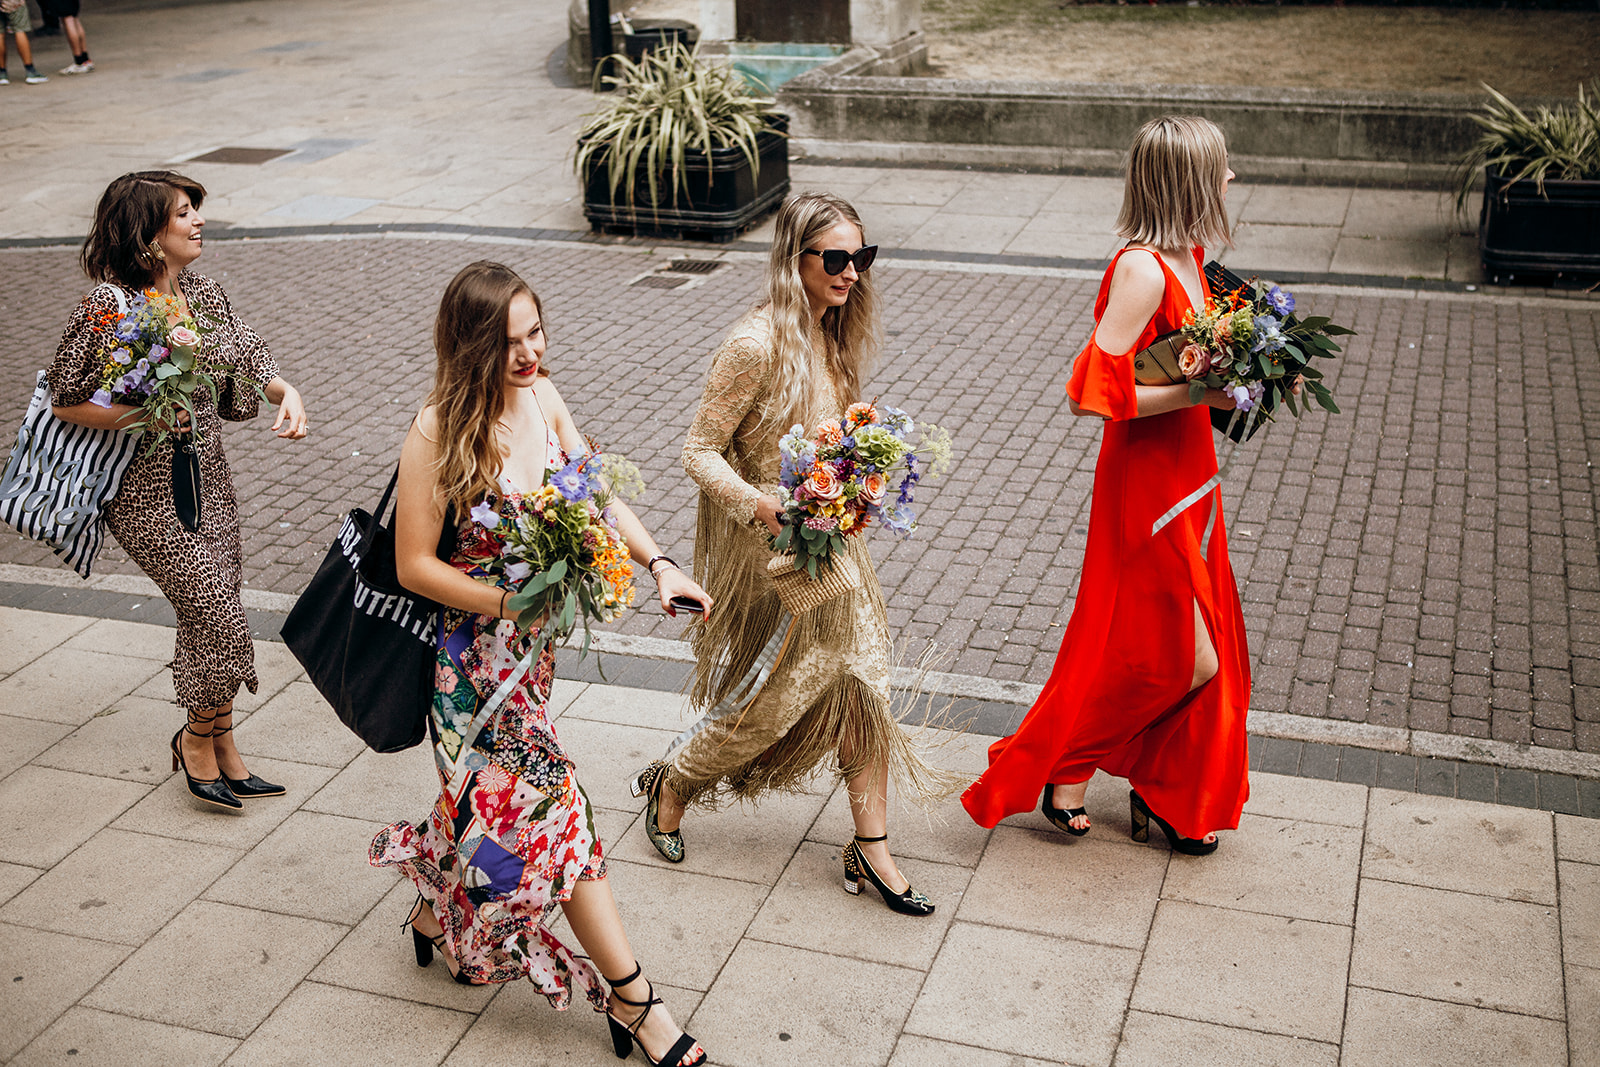 Win a £2.5K 'House of Hen' Prize: Modern, Creative, Life Affirming, Spiritual, Fun + Stylish Hen Gatherings from the MOST CURIOUS Team